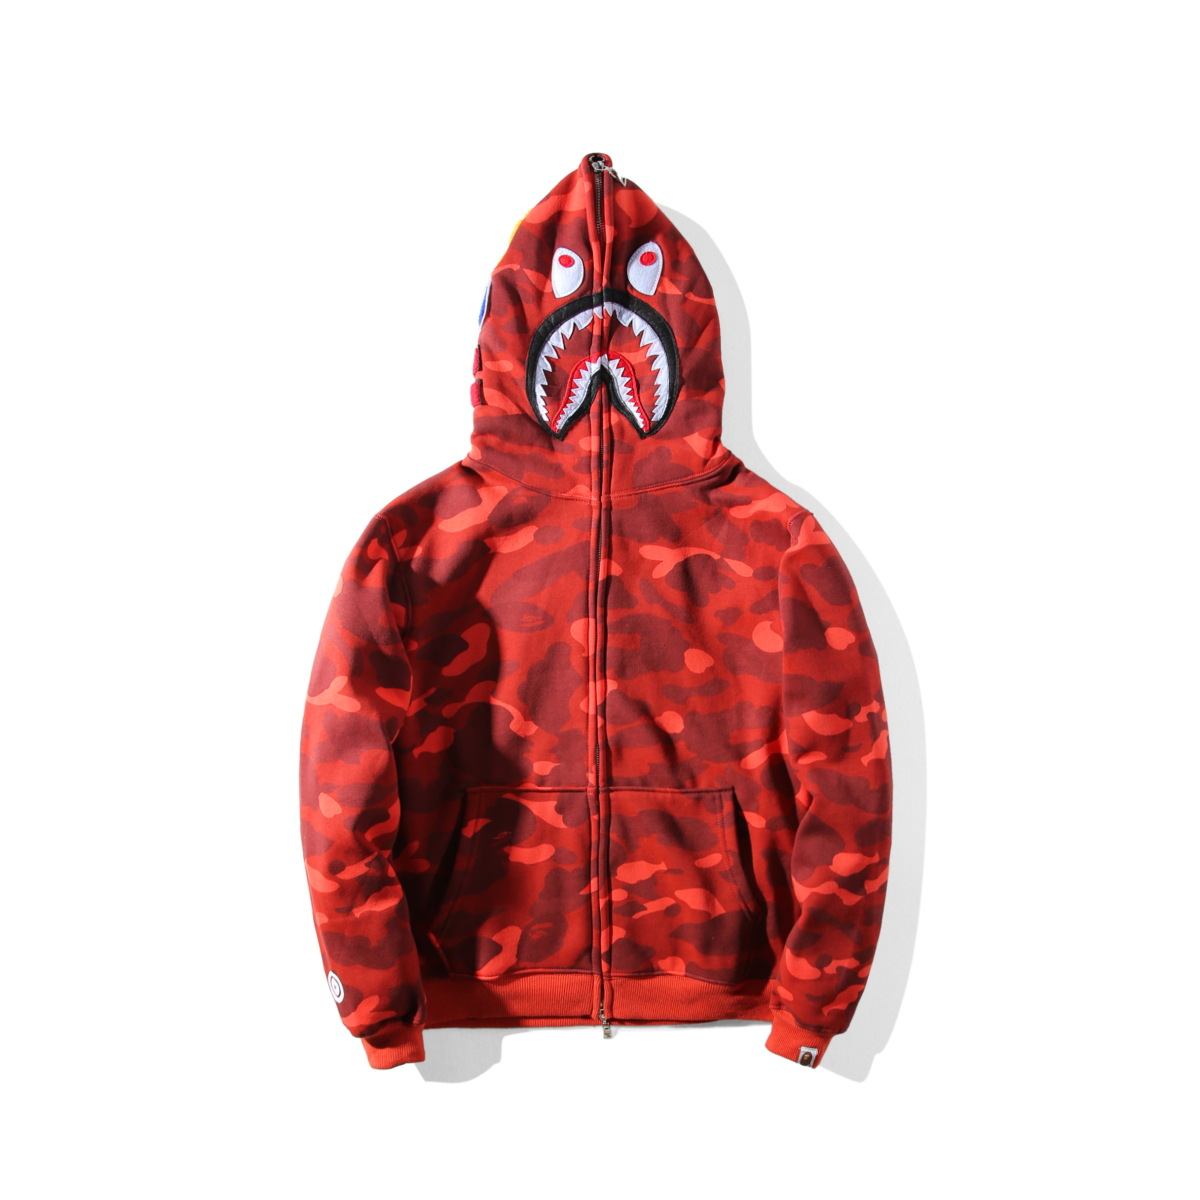 Details about  Bape A Bathing Ape Full Zipper Shark Jaw Red Camo Hoodie  Sweatshirt Coat Jacket 9e8b41e0c